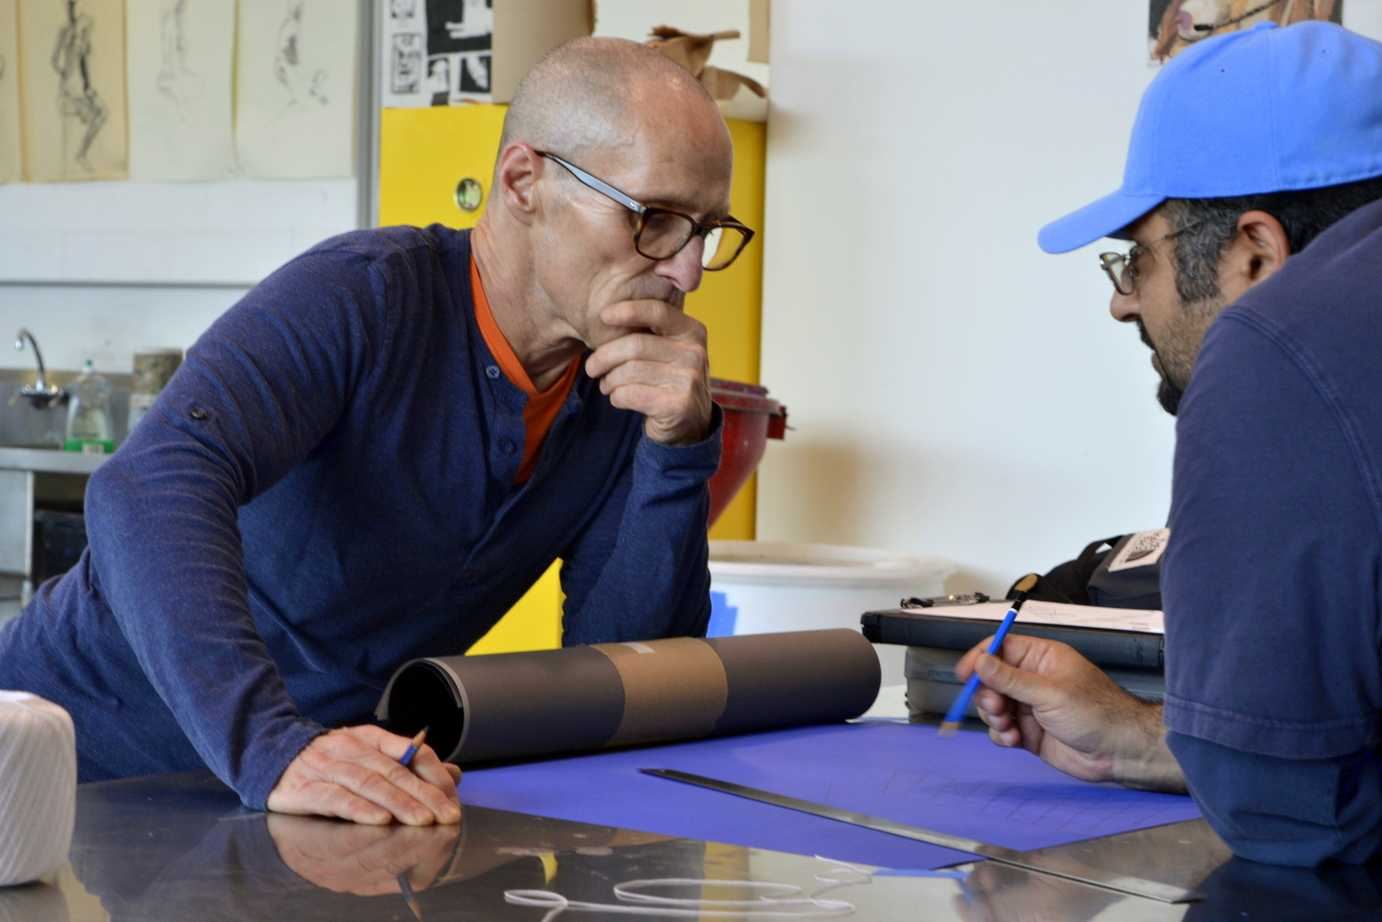 Professor Wayne Hulgin helps a student during one of his drawing classes in room AH-301 at San Diego City College. Photo credit: Edgar Inda